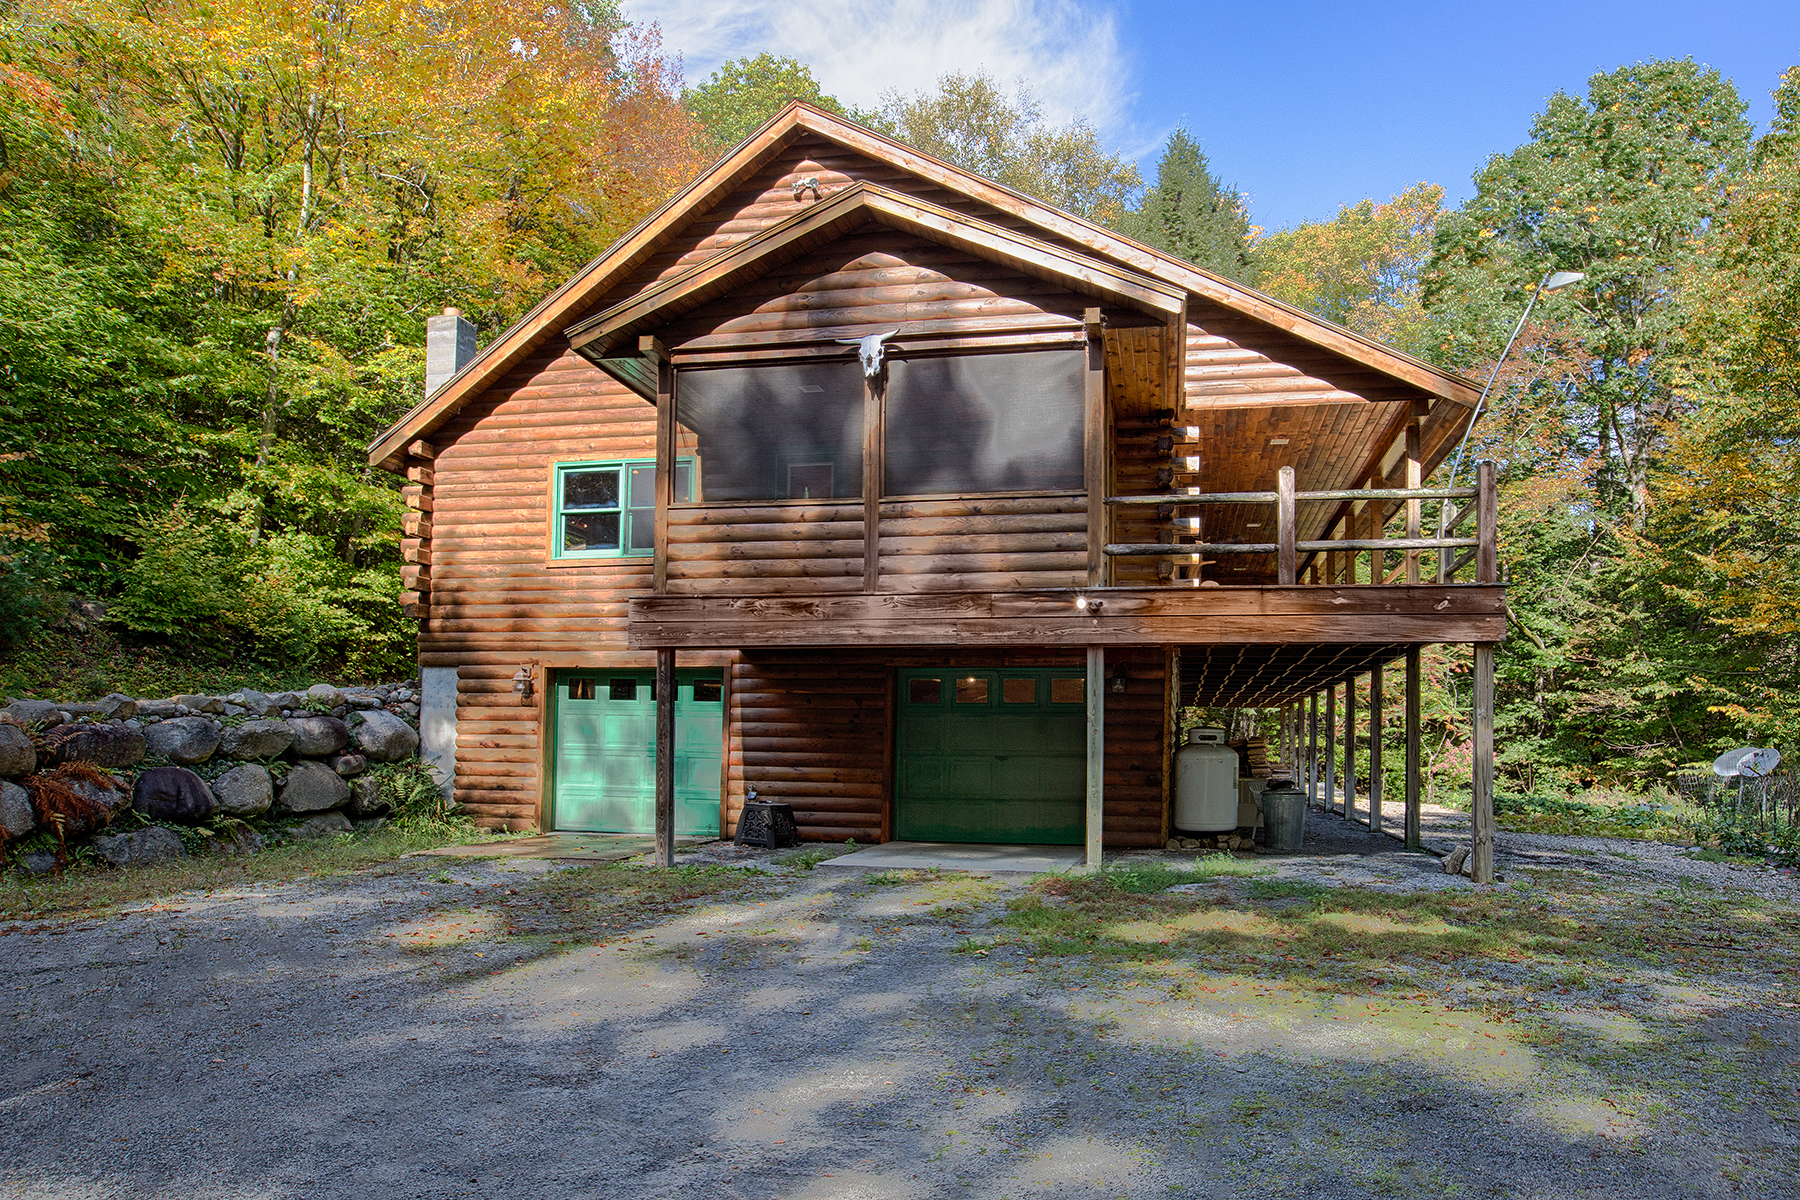 Maison unifamiliale pour l Vente à Luxury Log Wilderness Retreat 213 Dippikill Rd Warrensburg, New York 12885 États-Unis